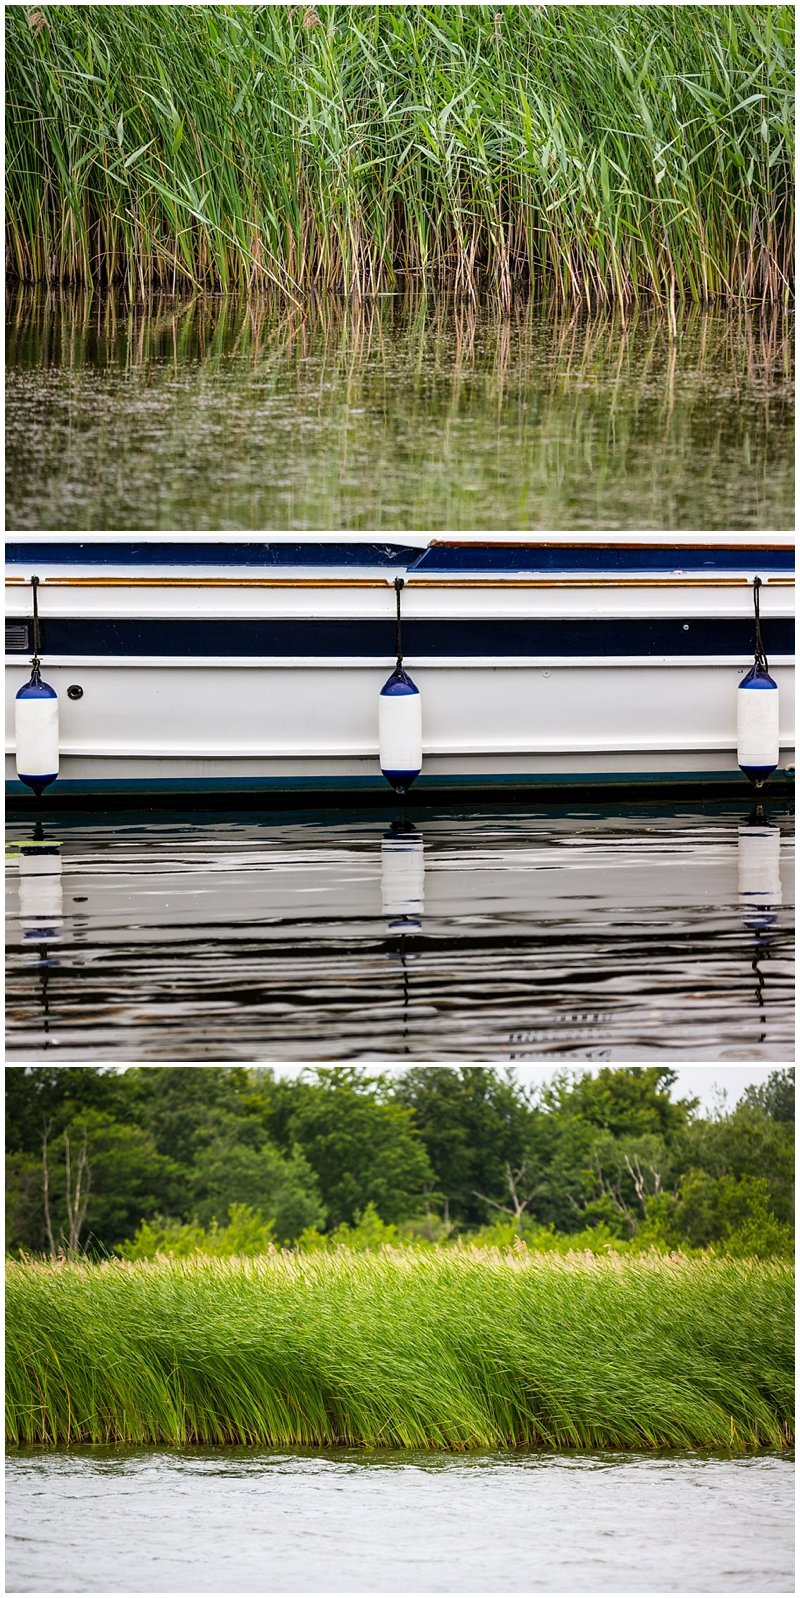 BROADS PHOTOGRAPHY CRUISES - NORFOLK AND NORWICH COMMERCIAL PHOTOGRAPHER 8